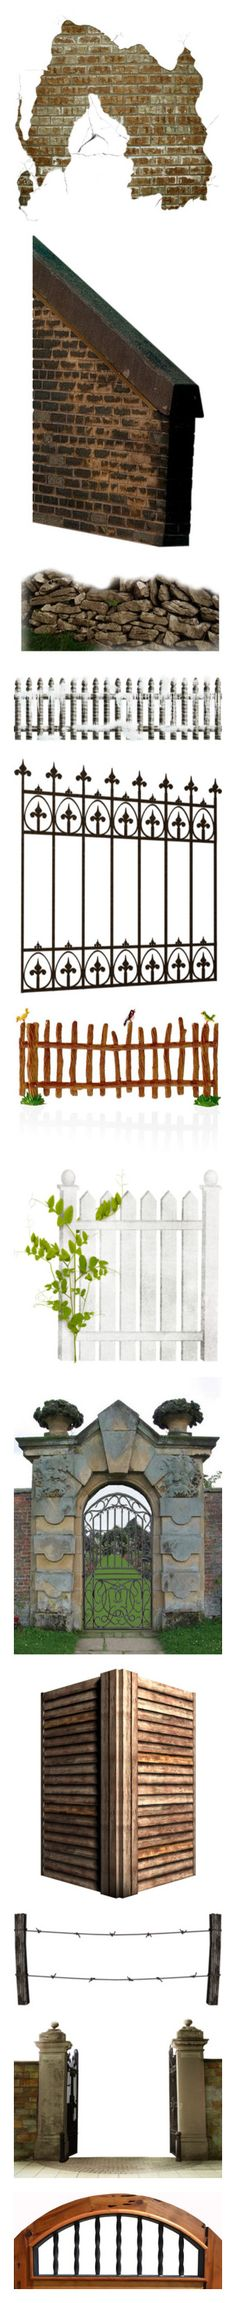 """Fences, Walls, Gates, Pillars, Arches and Gazebos"" by brandileek ❤ liked on Polyvore featuring walls, garden, winter, christmas, fence, xmas, filler, home, home decor and wooden figurines"